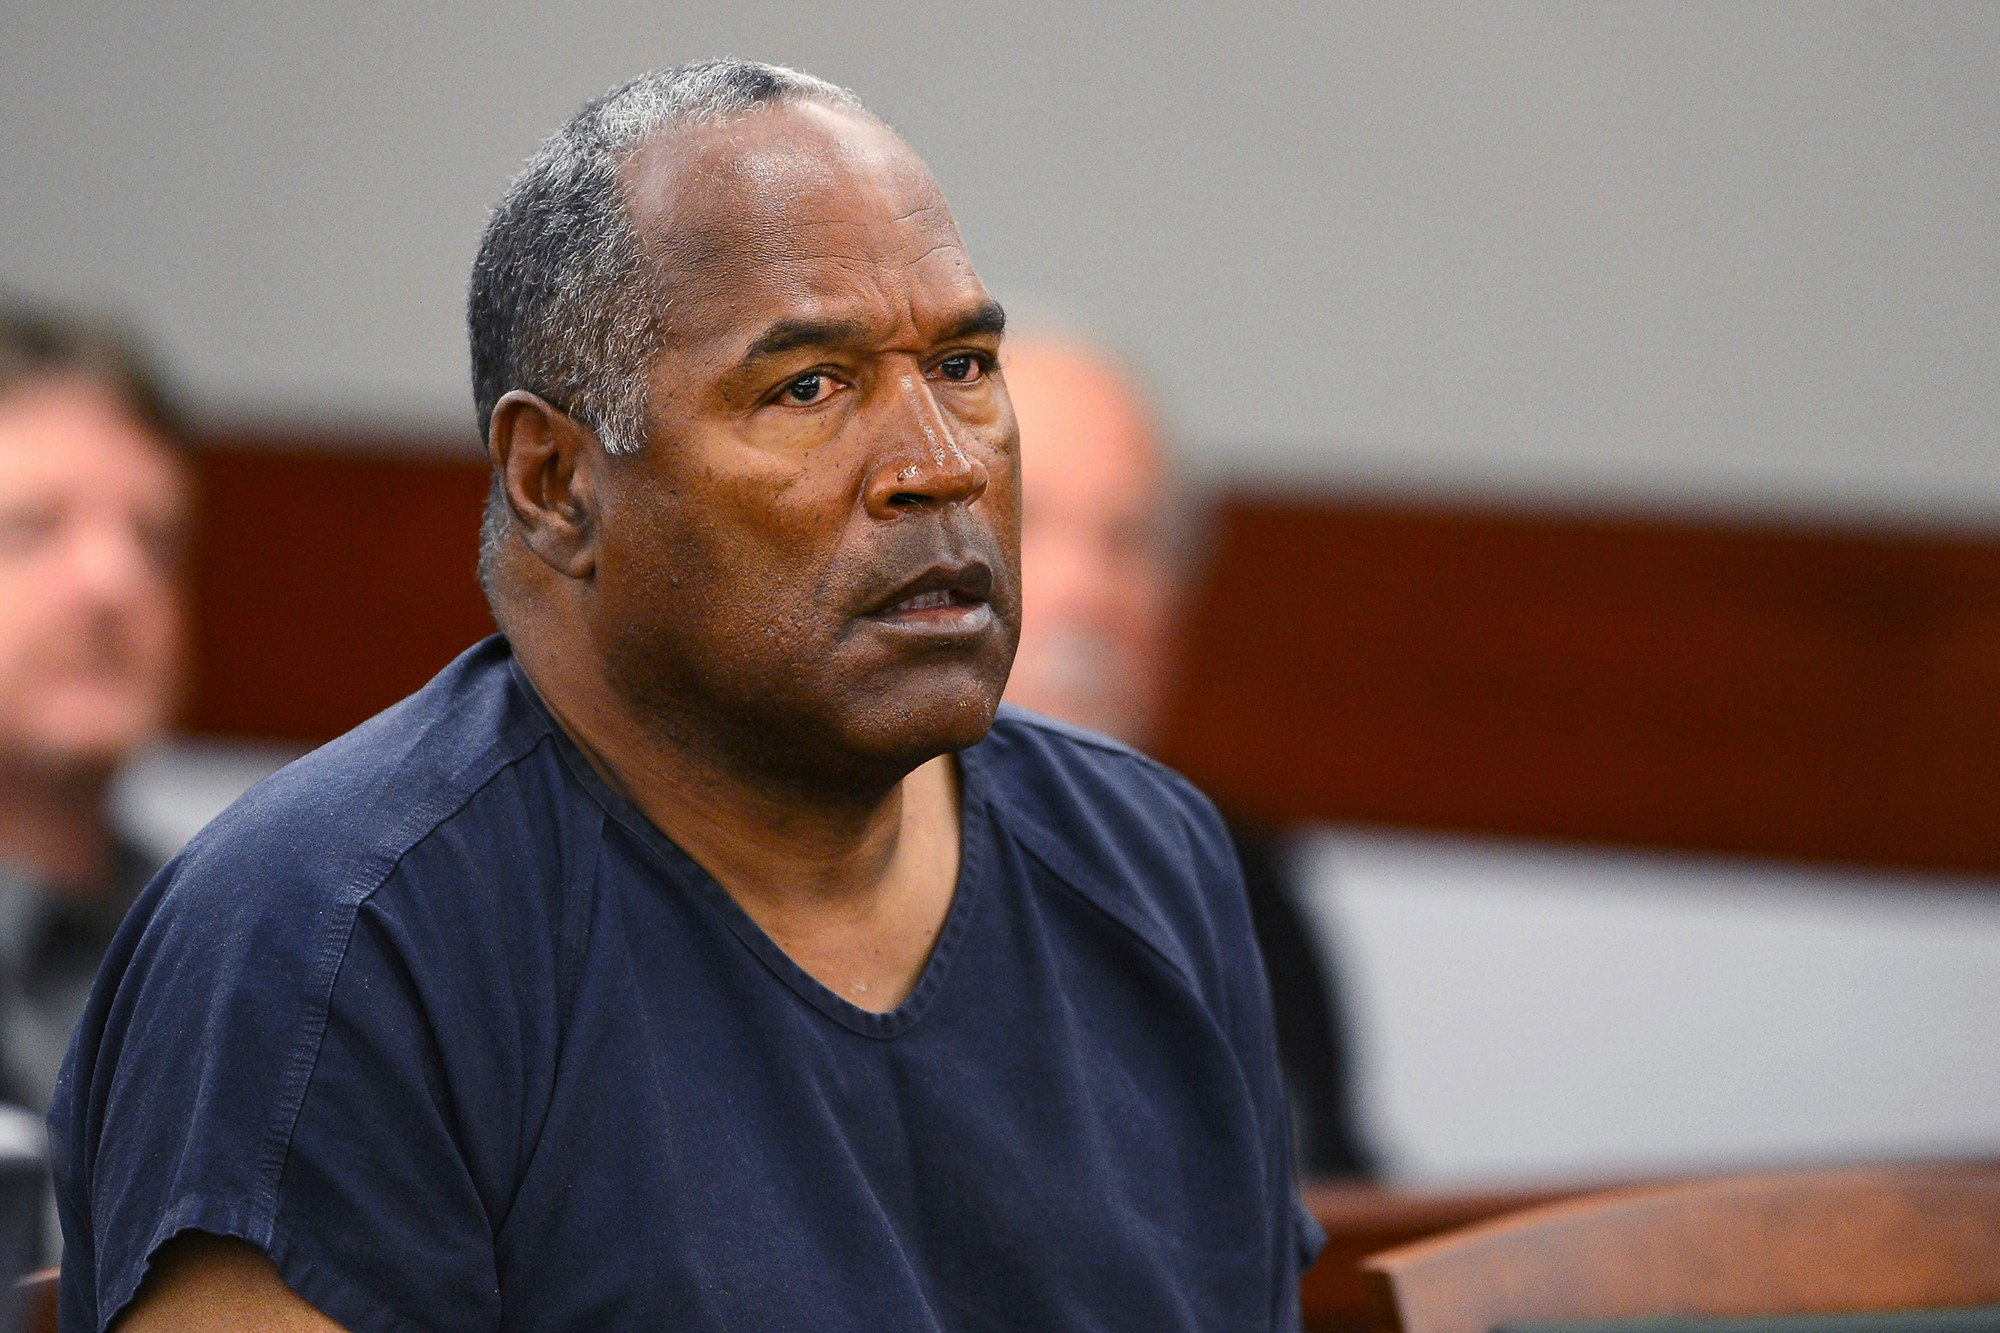 Lawyers are after O.J. Simpson's autograph money